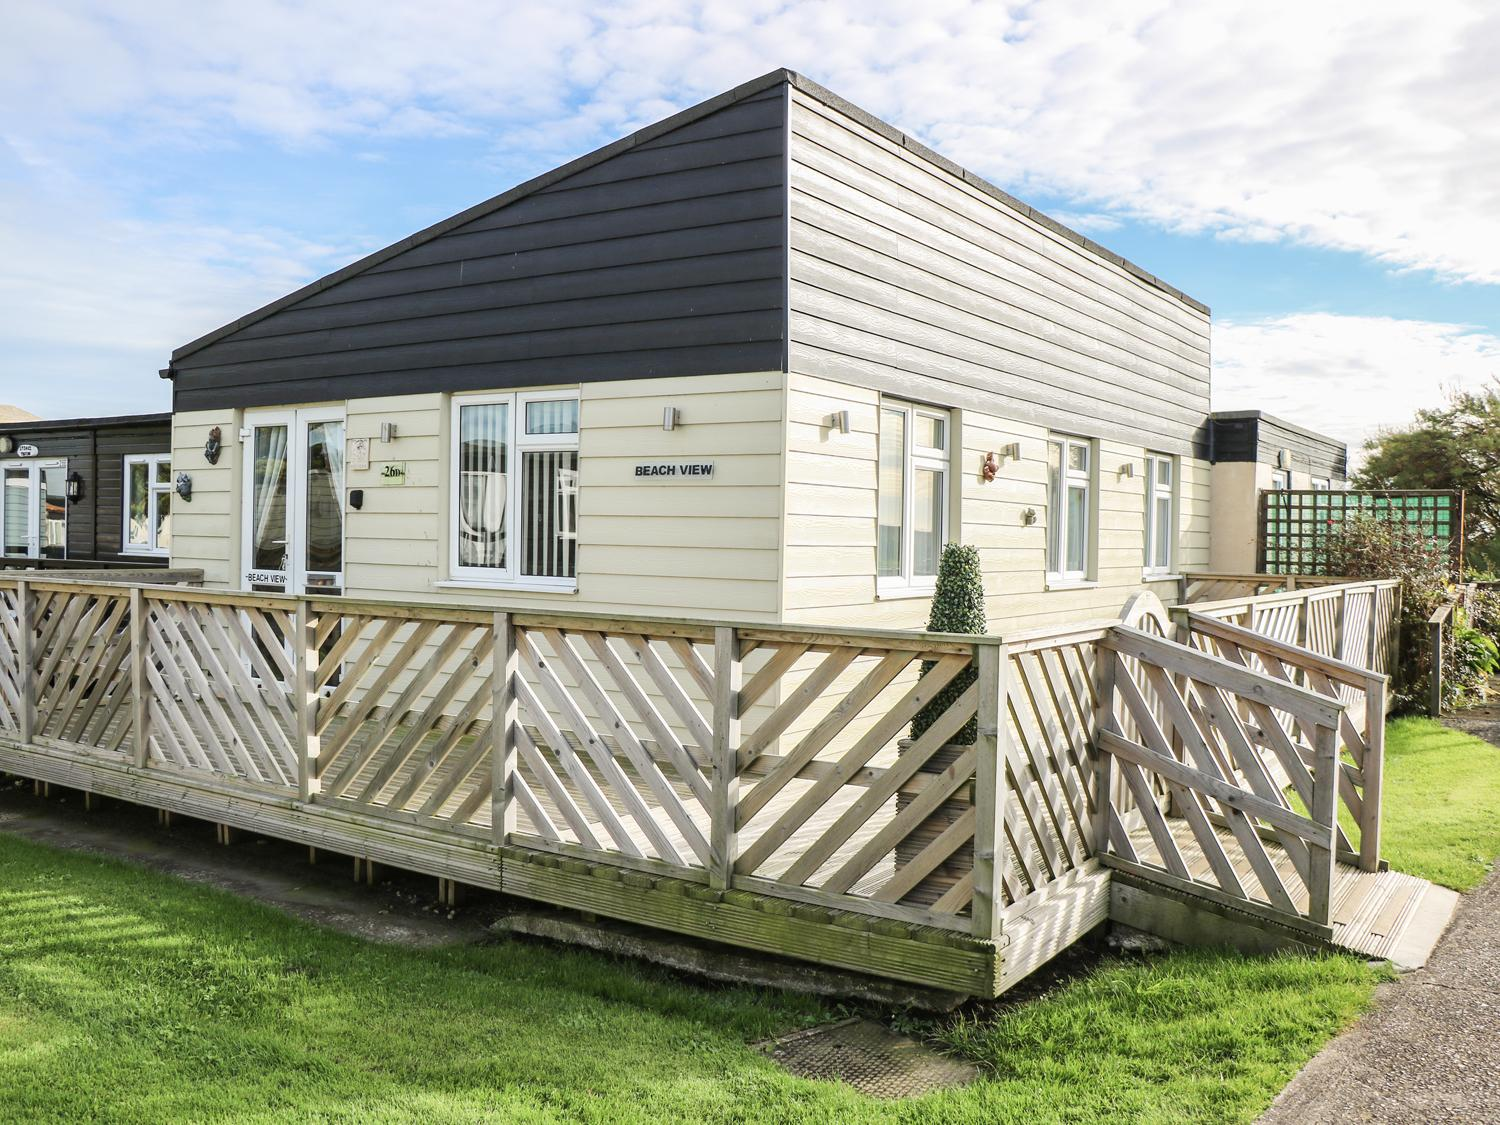 Holiday Cottage Reviews for 26D Beach View - Holiday Cottage in Earnley , West Sussex